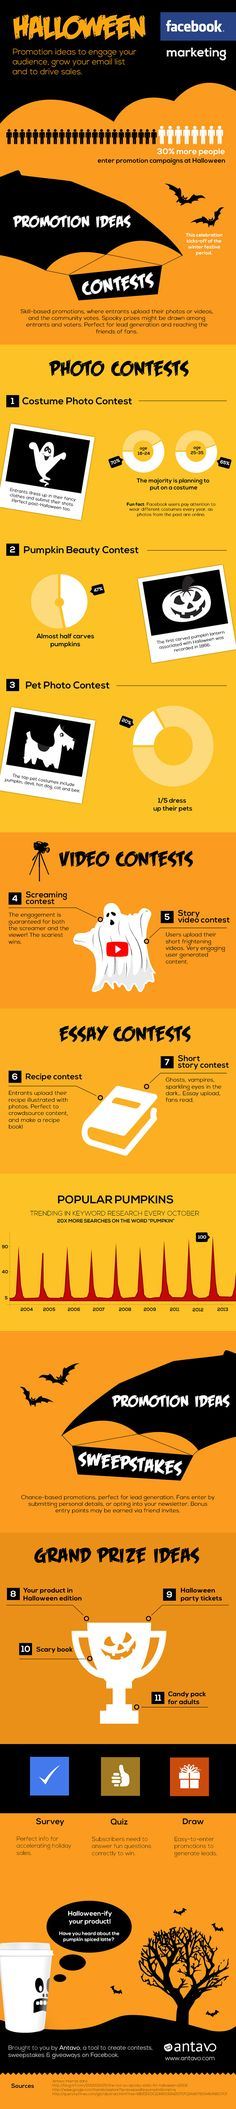 via @antavopromotion, 30% more Facebook users entered promotional campaigns around Halloween #Infographic